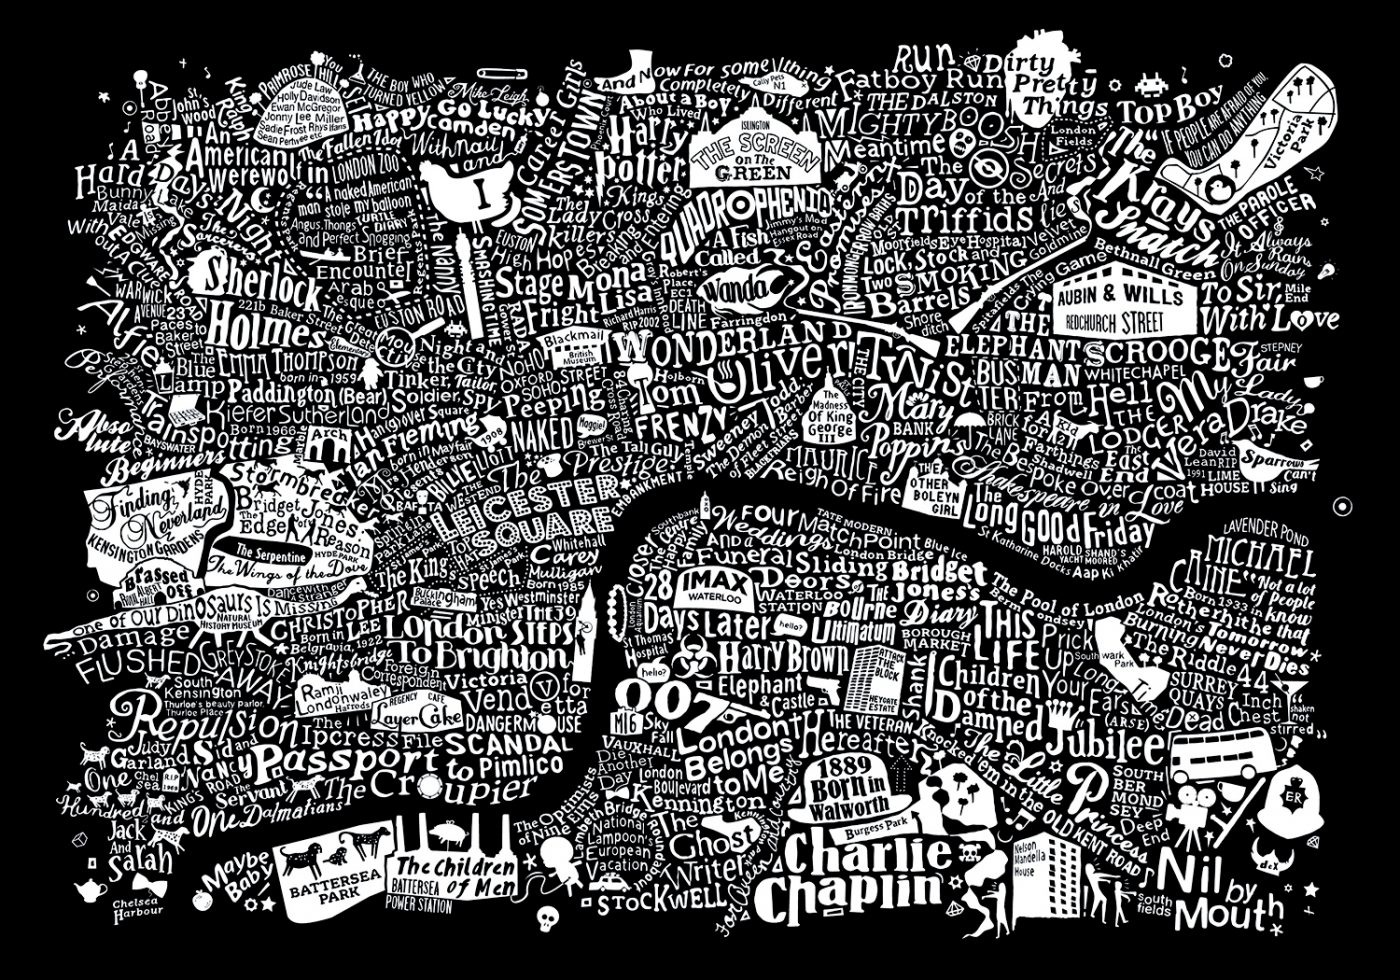 Map Of Central London To Print.Central London Film Map Run For The Hills